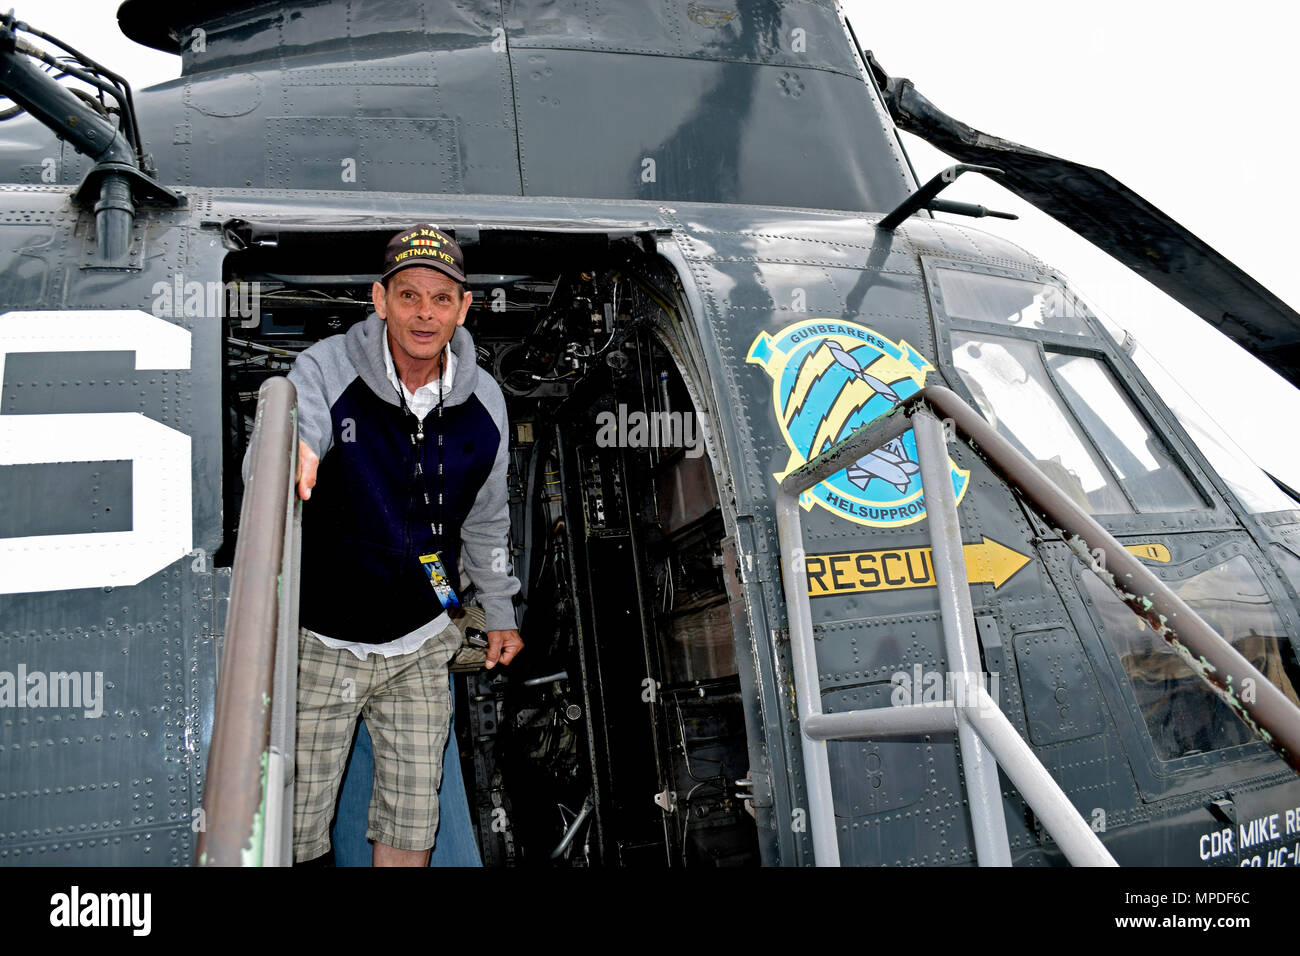 Navy Vietnam Veteran, Wayne Oversen, tours a helicopter on the flight deck of the USS Midway Museum, San Diego, California - Stock Image